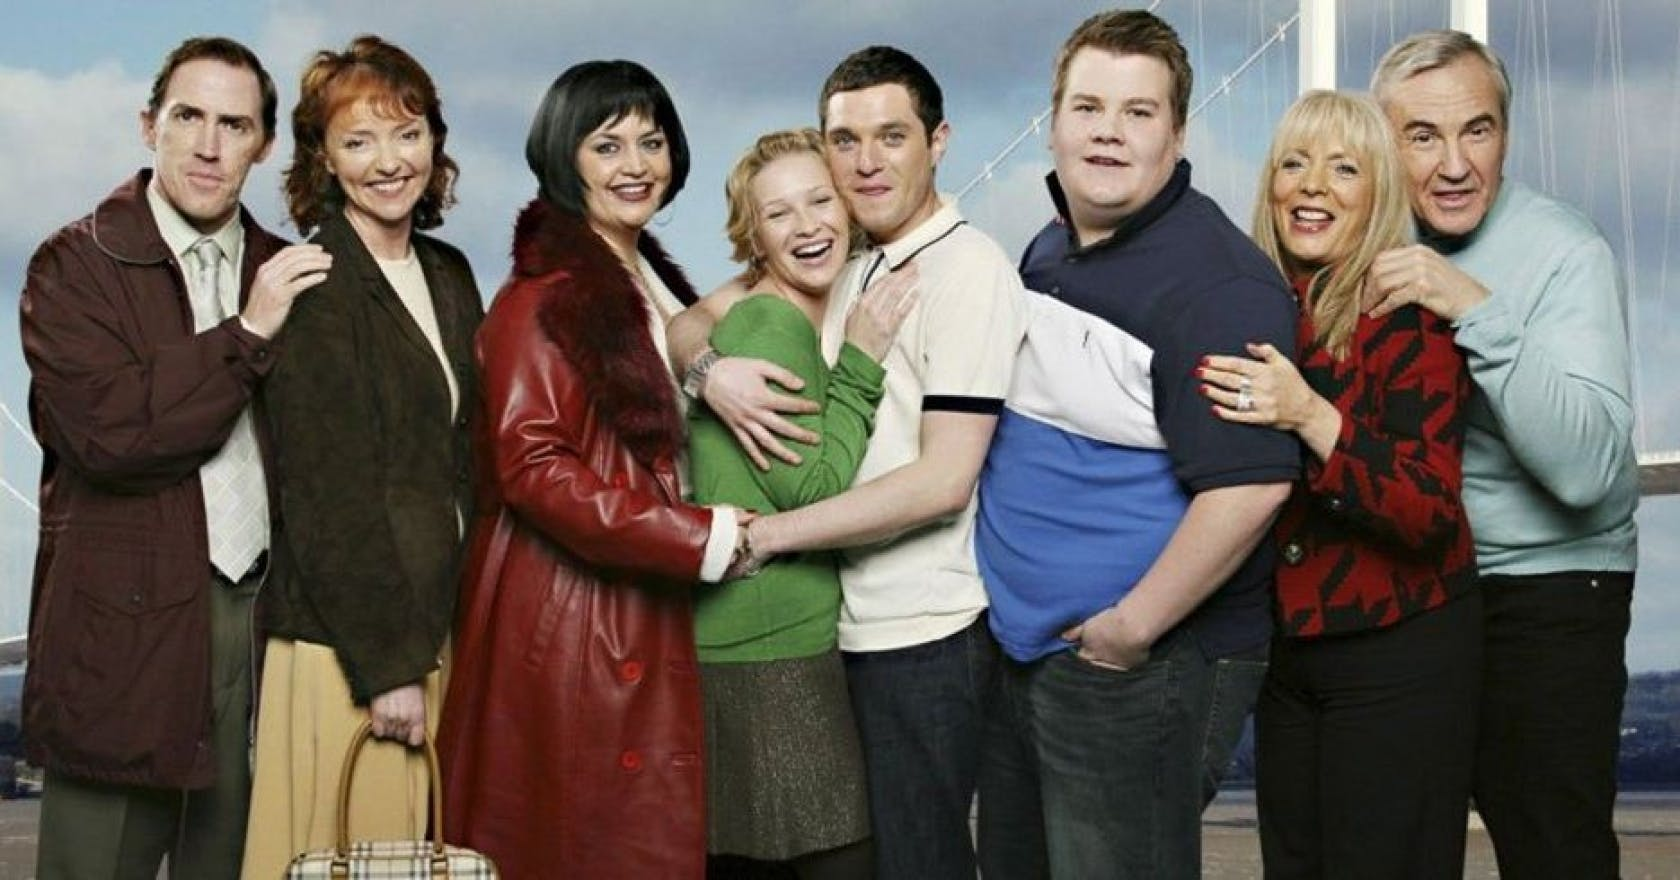 This Gavin & Stacey virtual quiz is a lockdown treat for fans